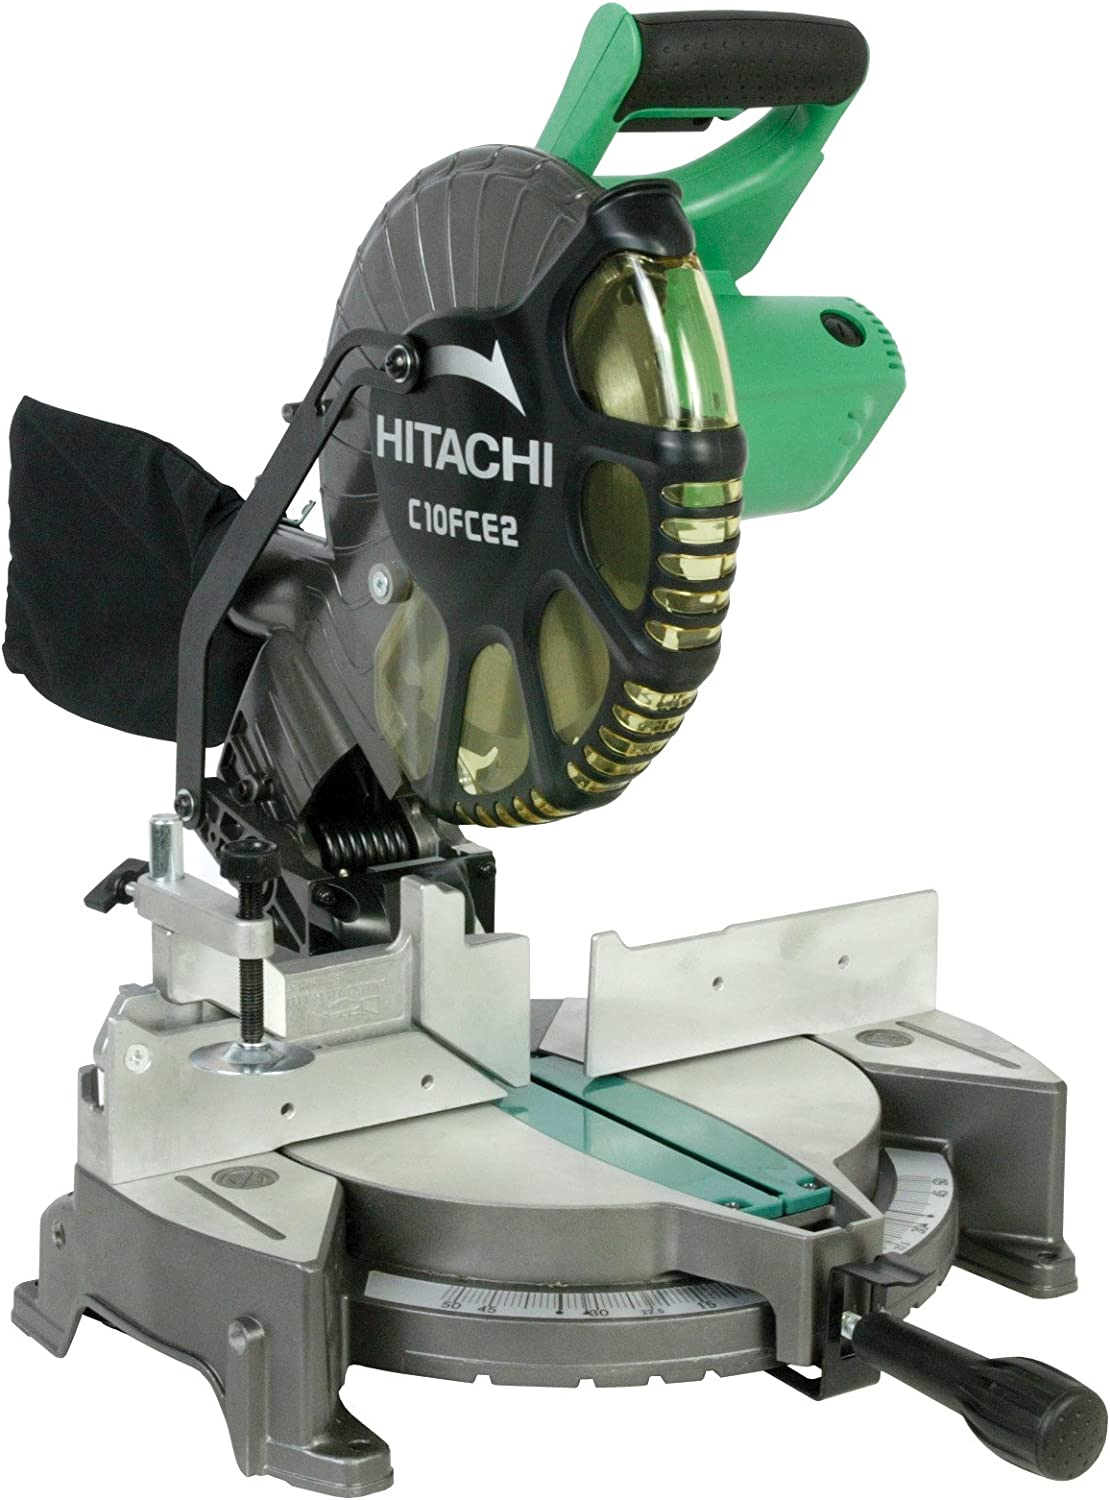 Hitachi C10FCE2  Compound Miter saw